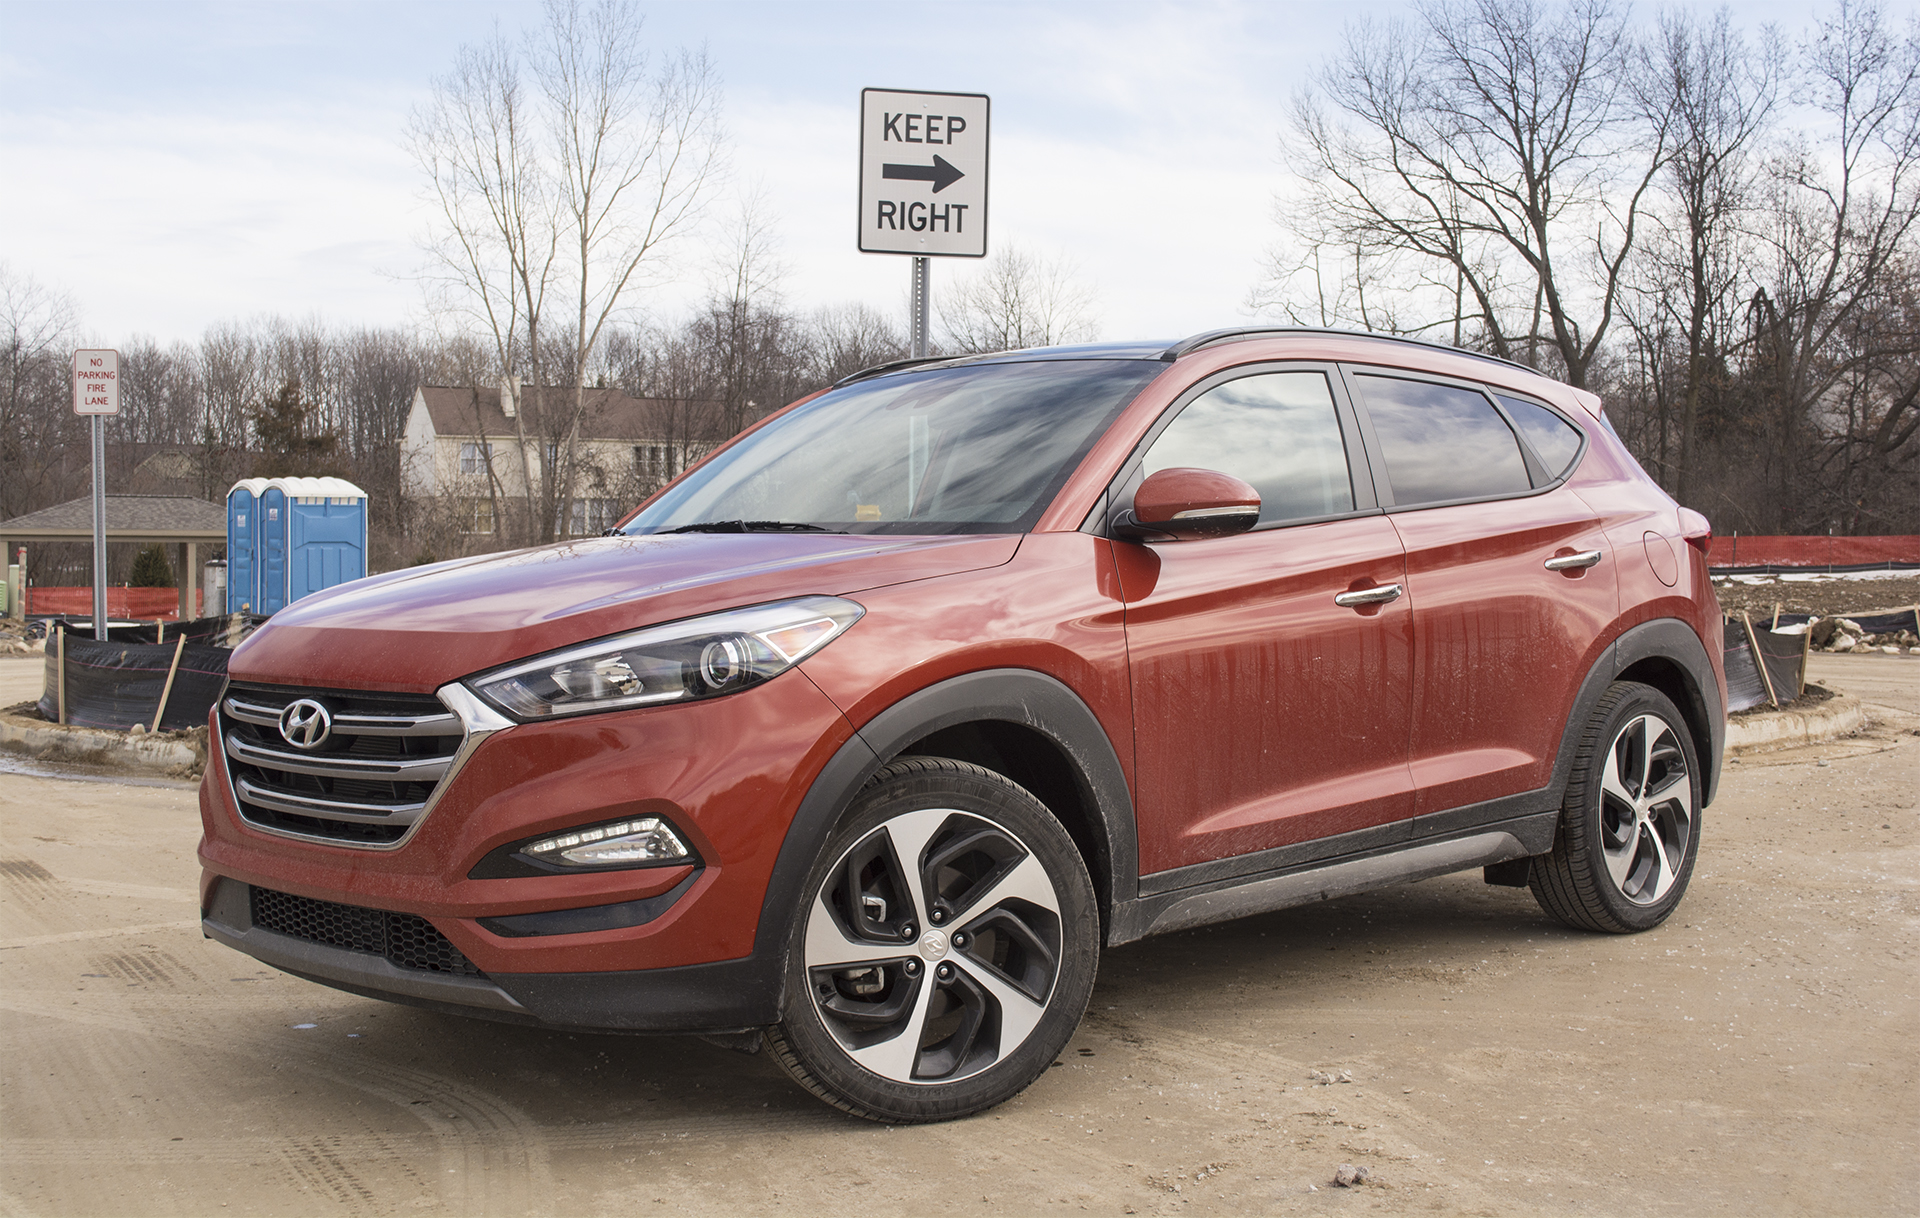 Used 2016 Hyundai Tucson for sale - Pricing & Features ... |Orange Hyundai Tucson 2016